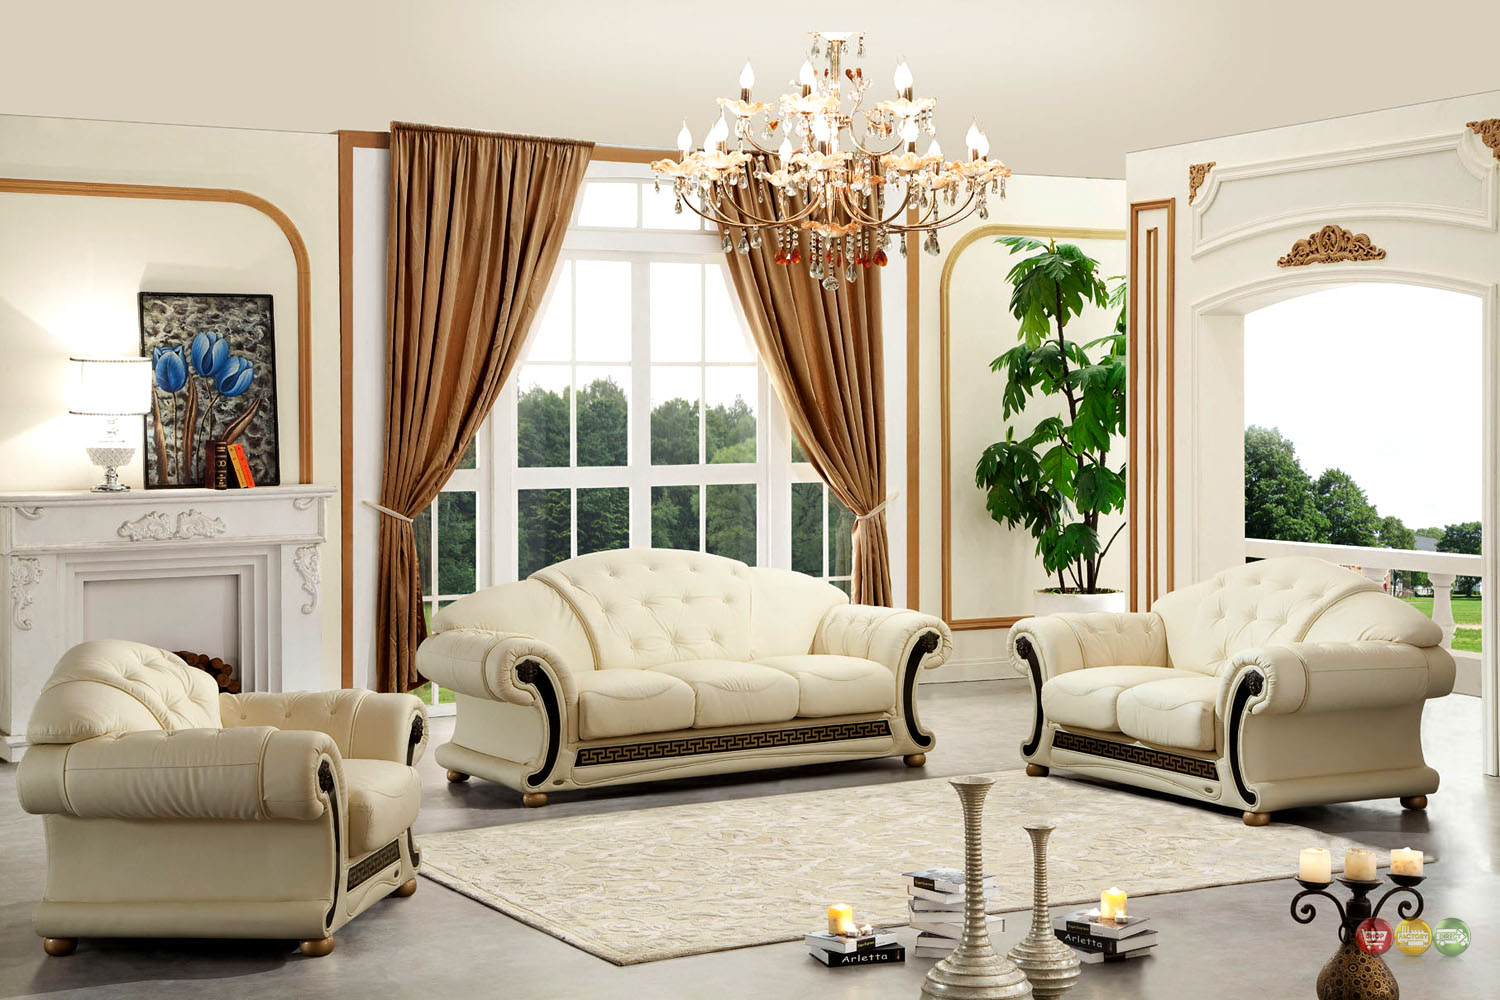 Sofa Set Sale In Jamshedpur Versace Cleopatra Cream Italian Top Grain Leather Beige